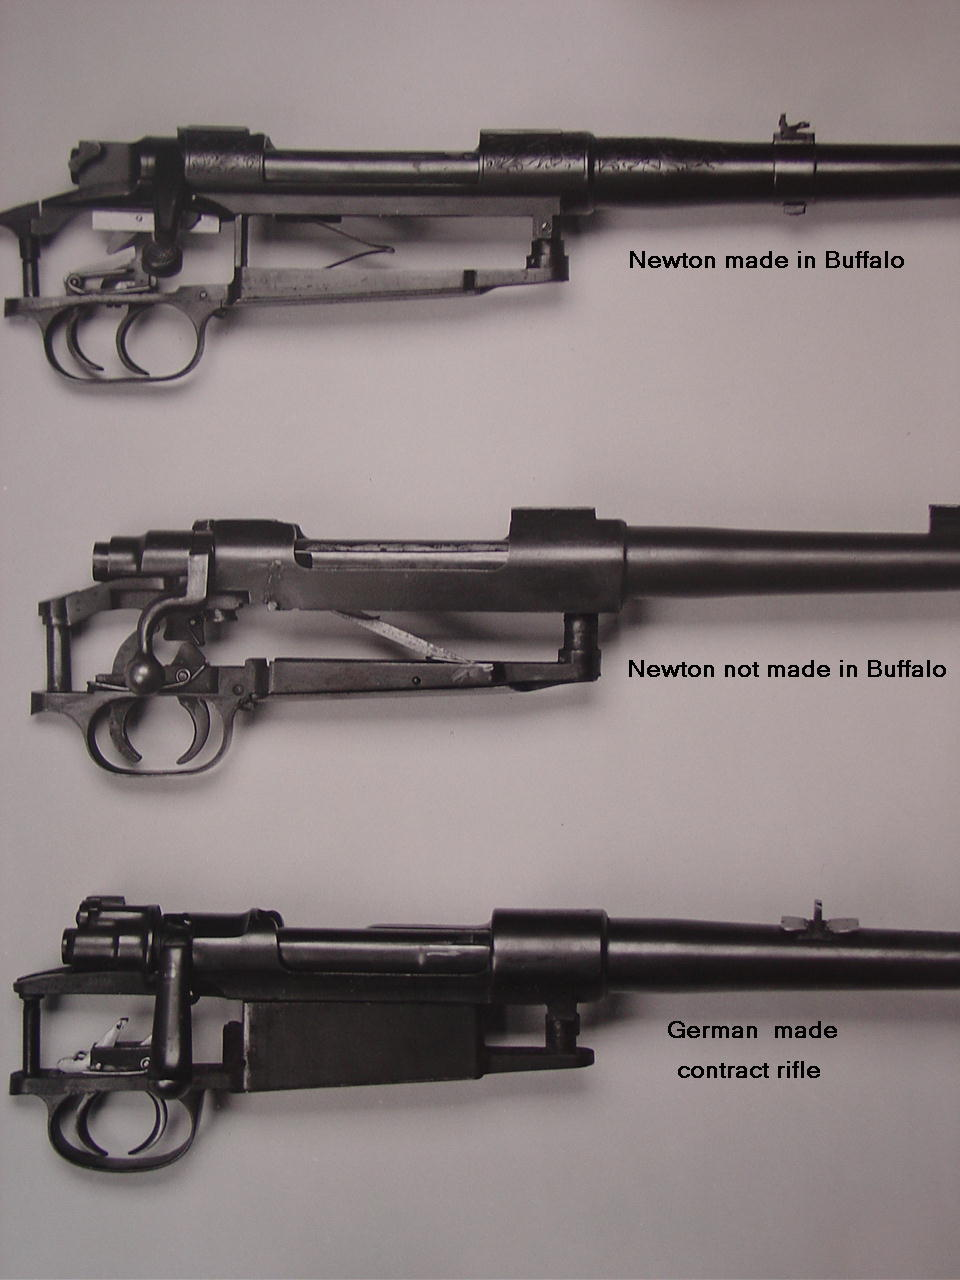 The top rifle is a Newton design and made at his Buffalo works. The centre rifle is a Newton design but not made at the Buffalo works. The bottom rifle is a Newton rifle made on a commercial Mauser 98 action. (Picture courtesy iroquoisarmscollectors.org).